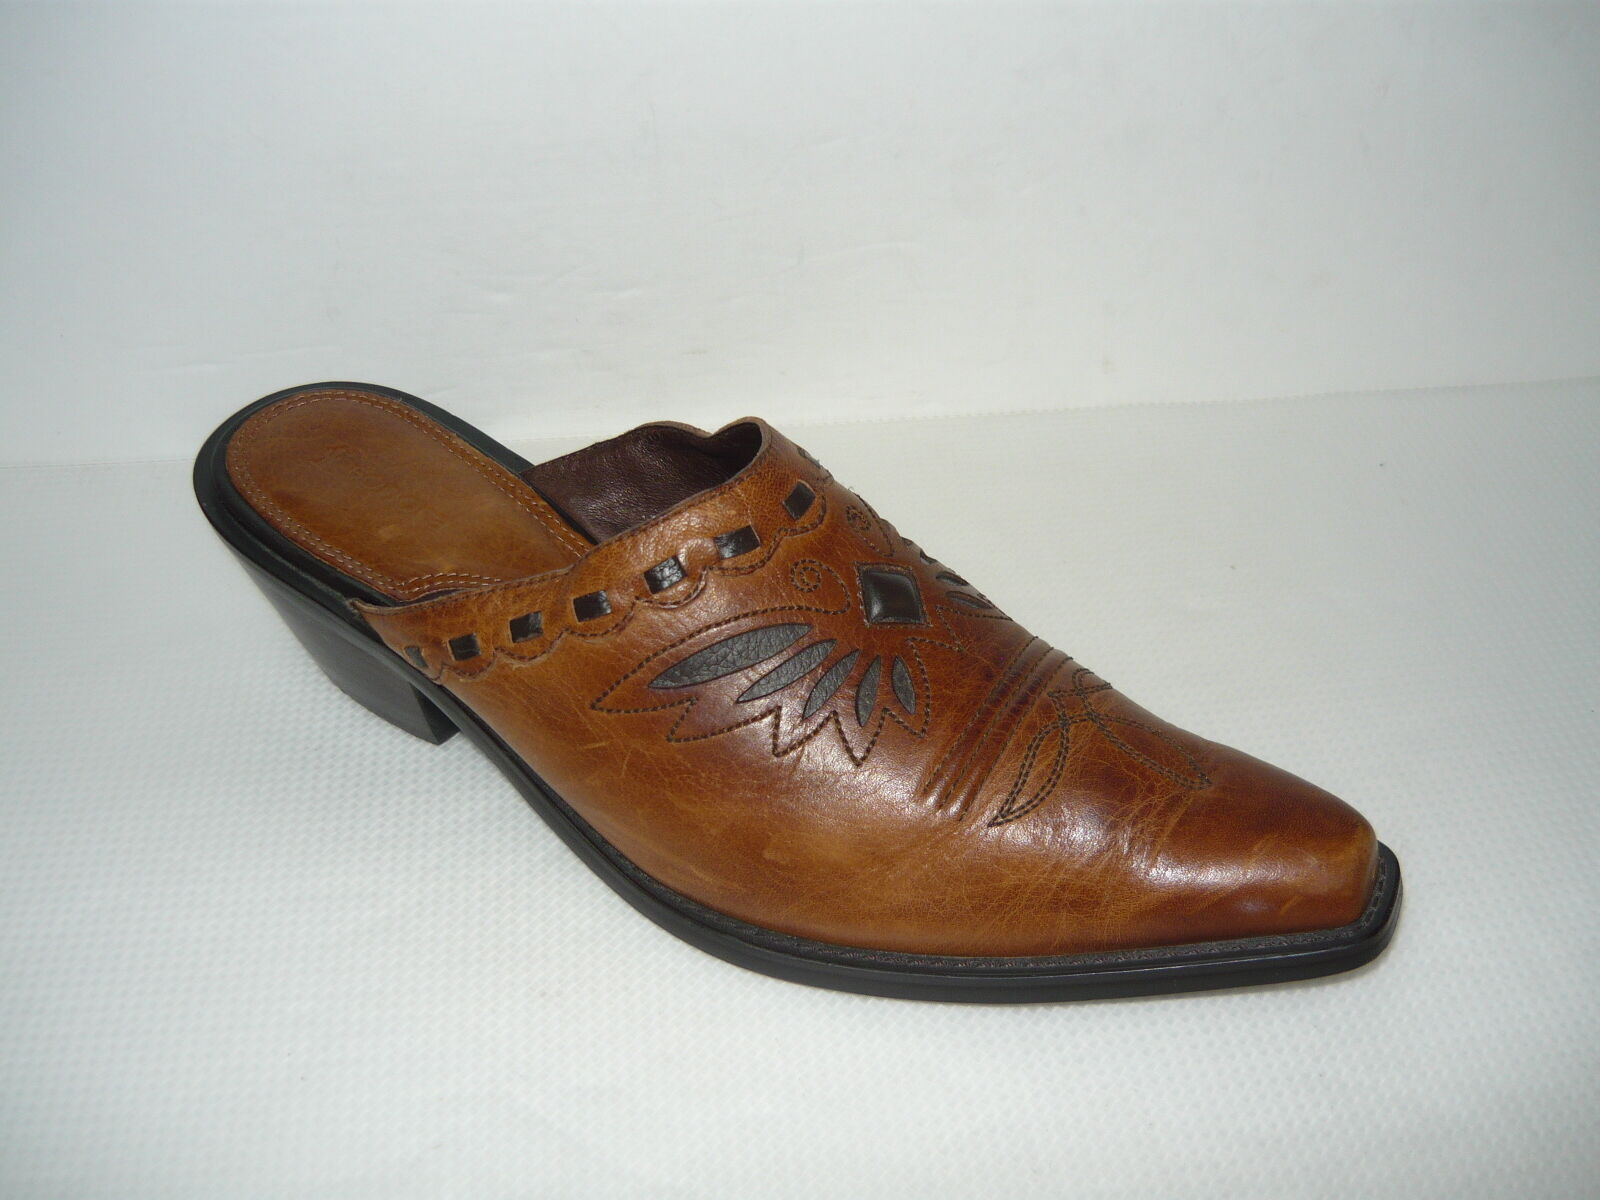 Sonora Brown Leather Mule Slide Western shoes Size 8M